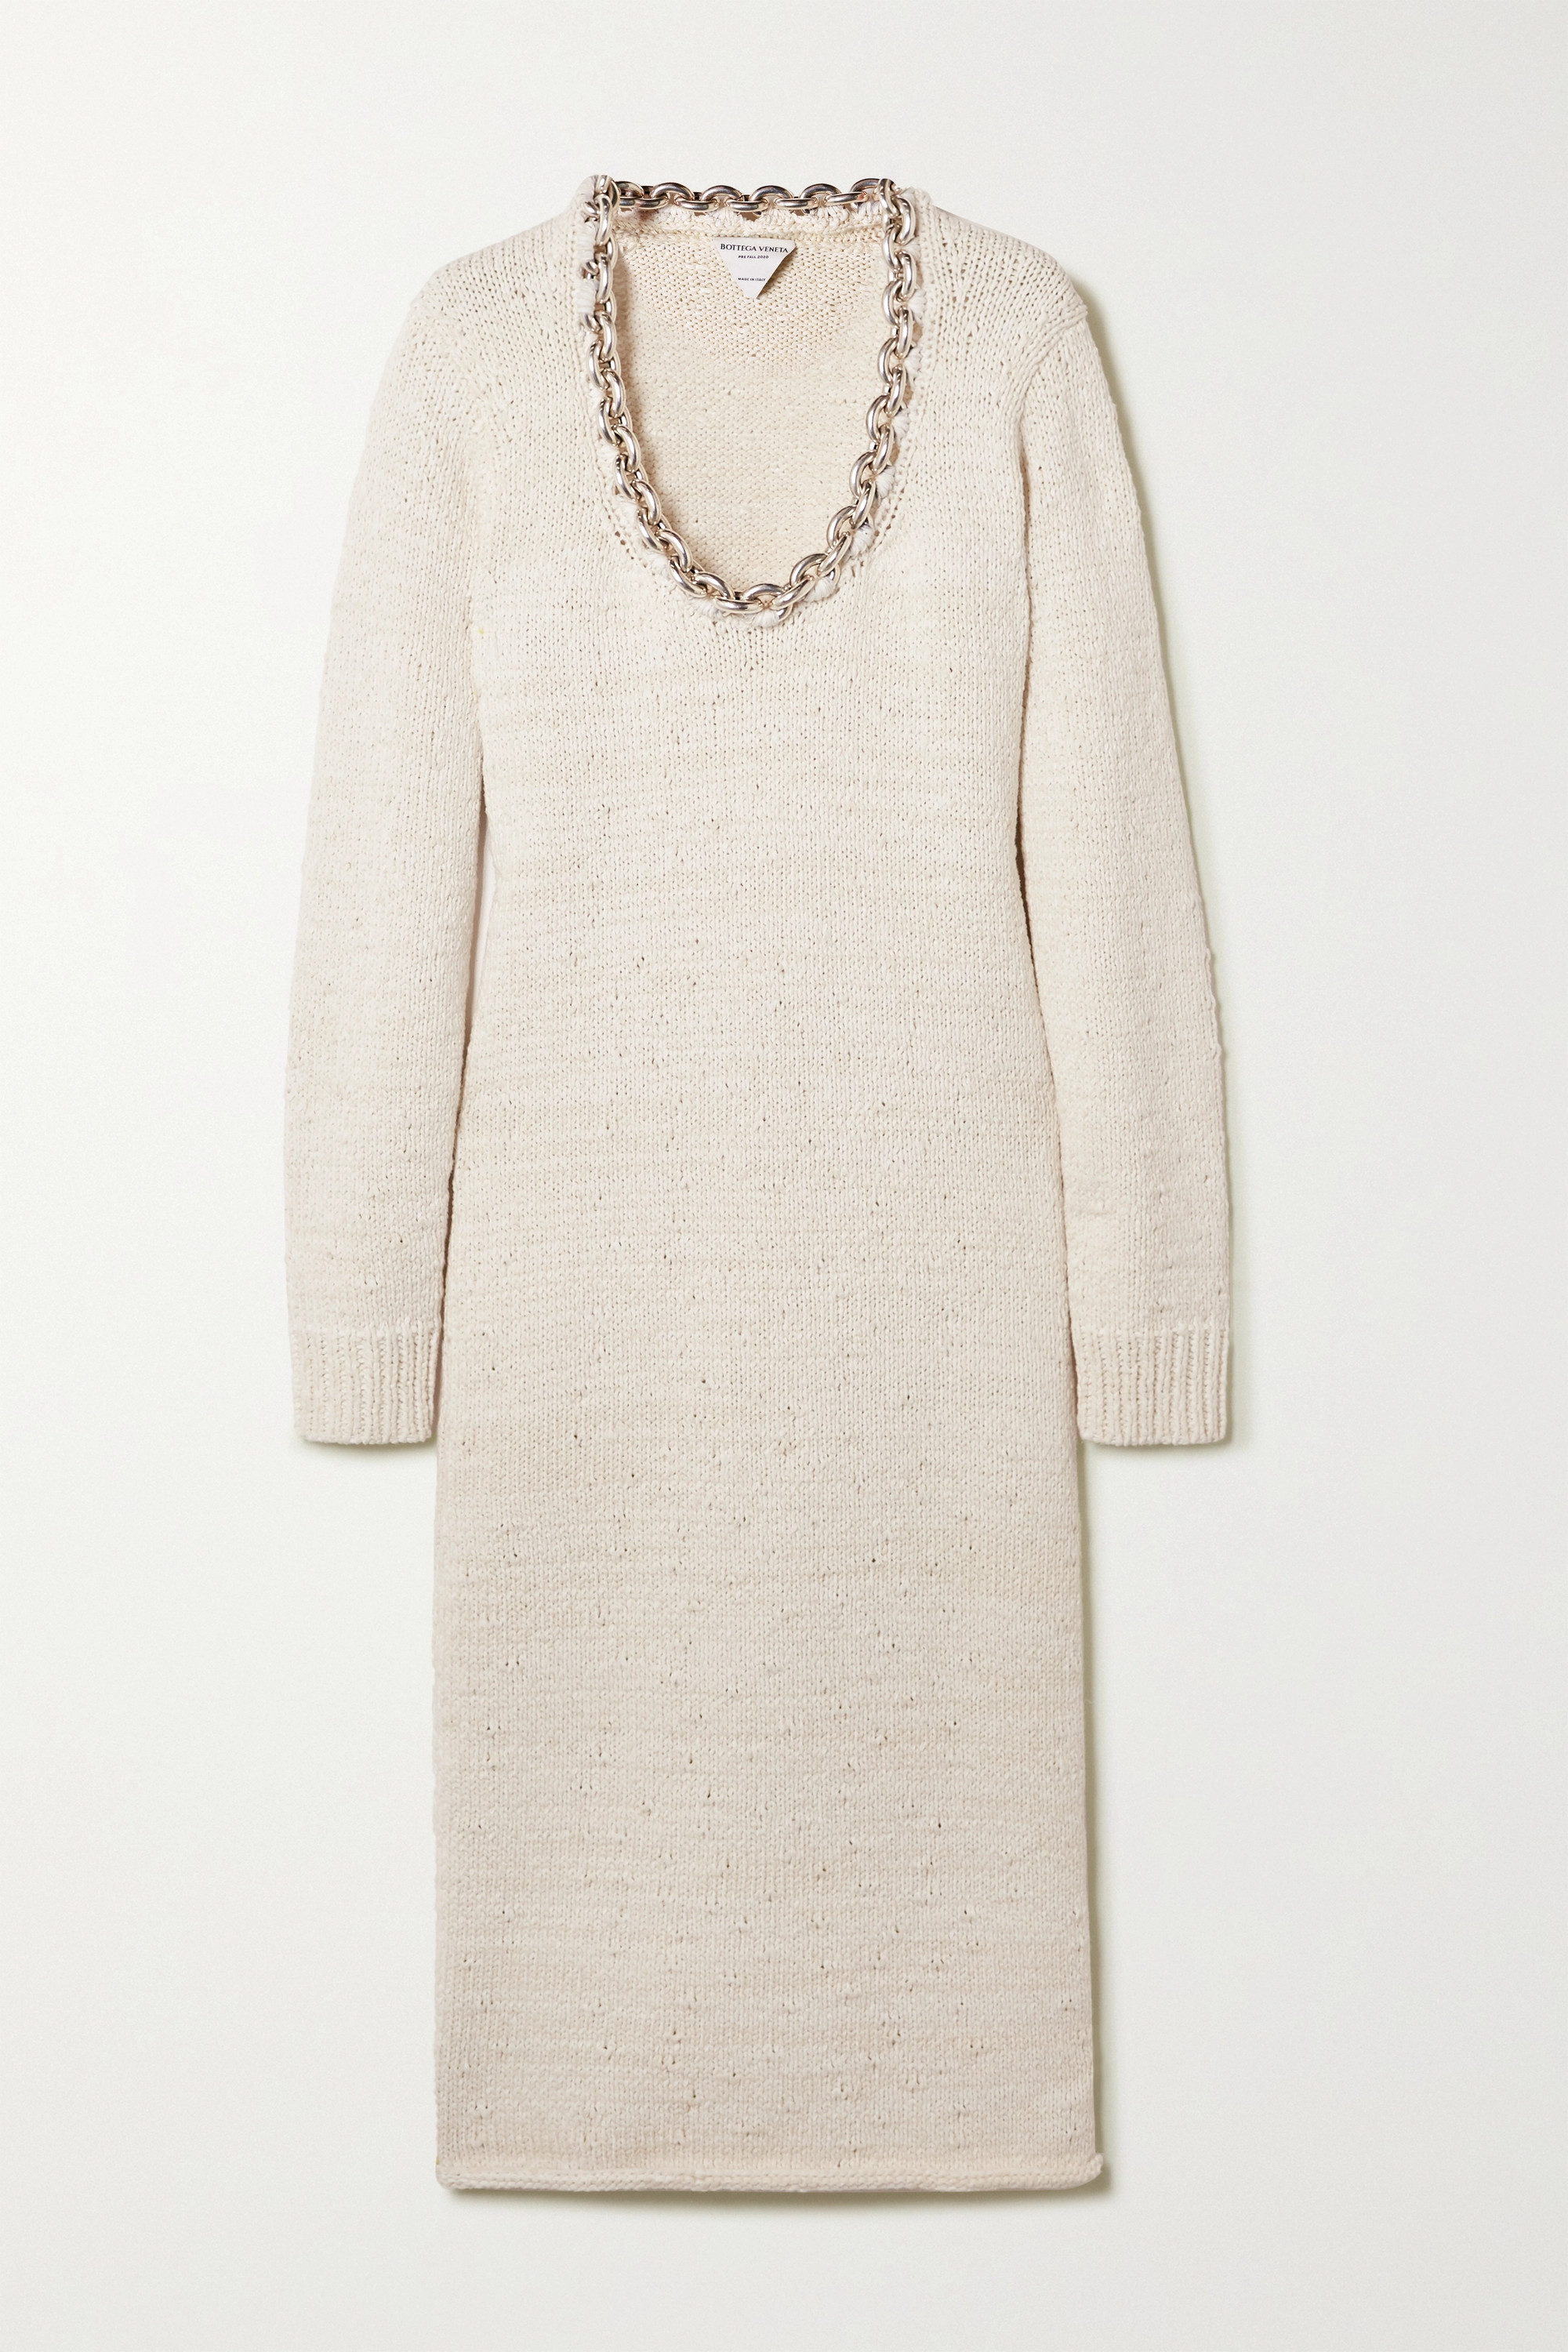 Bottega Veneta Chain-embellished knitted midi dress